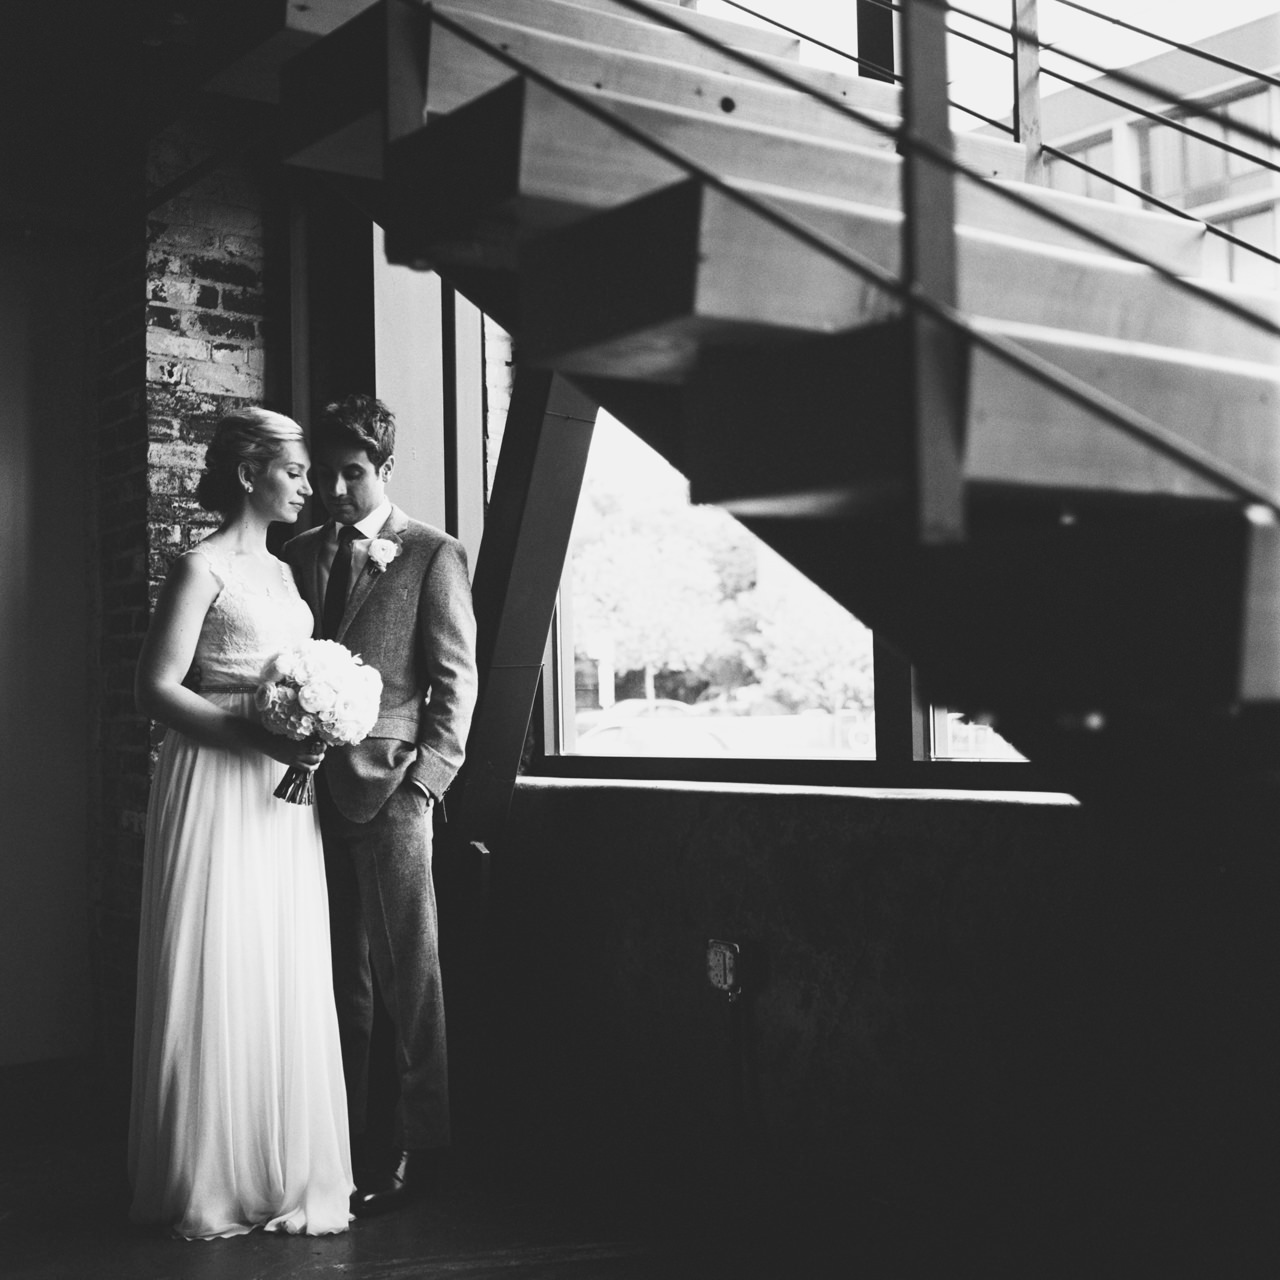 leftbank-annex-film-portland-wedding-029.jpg